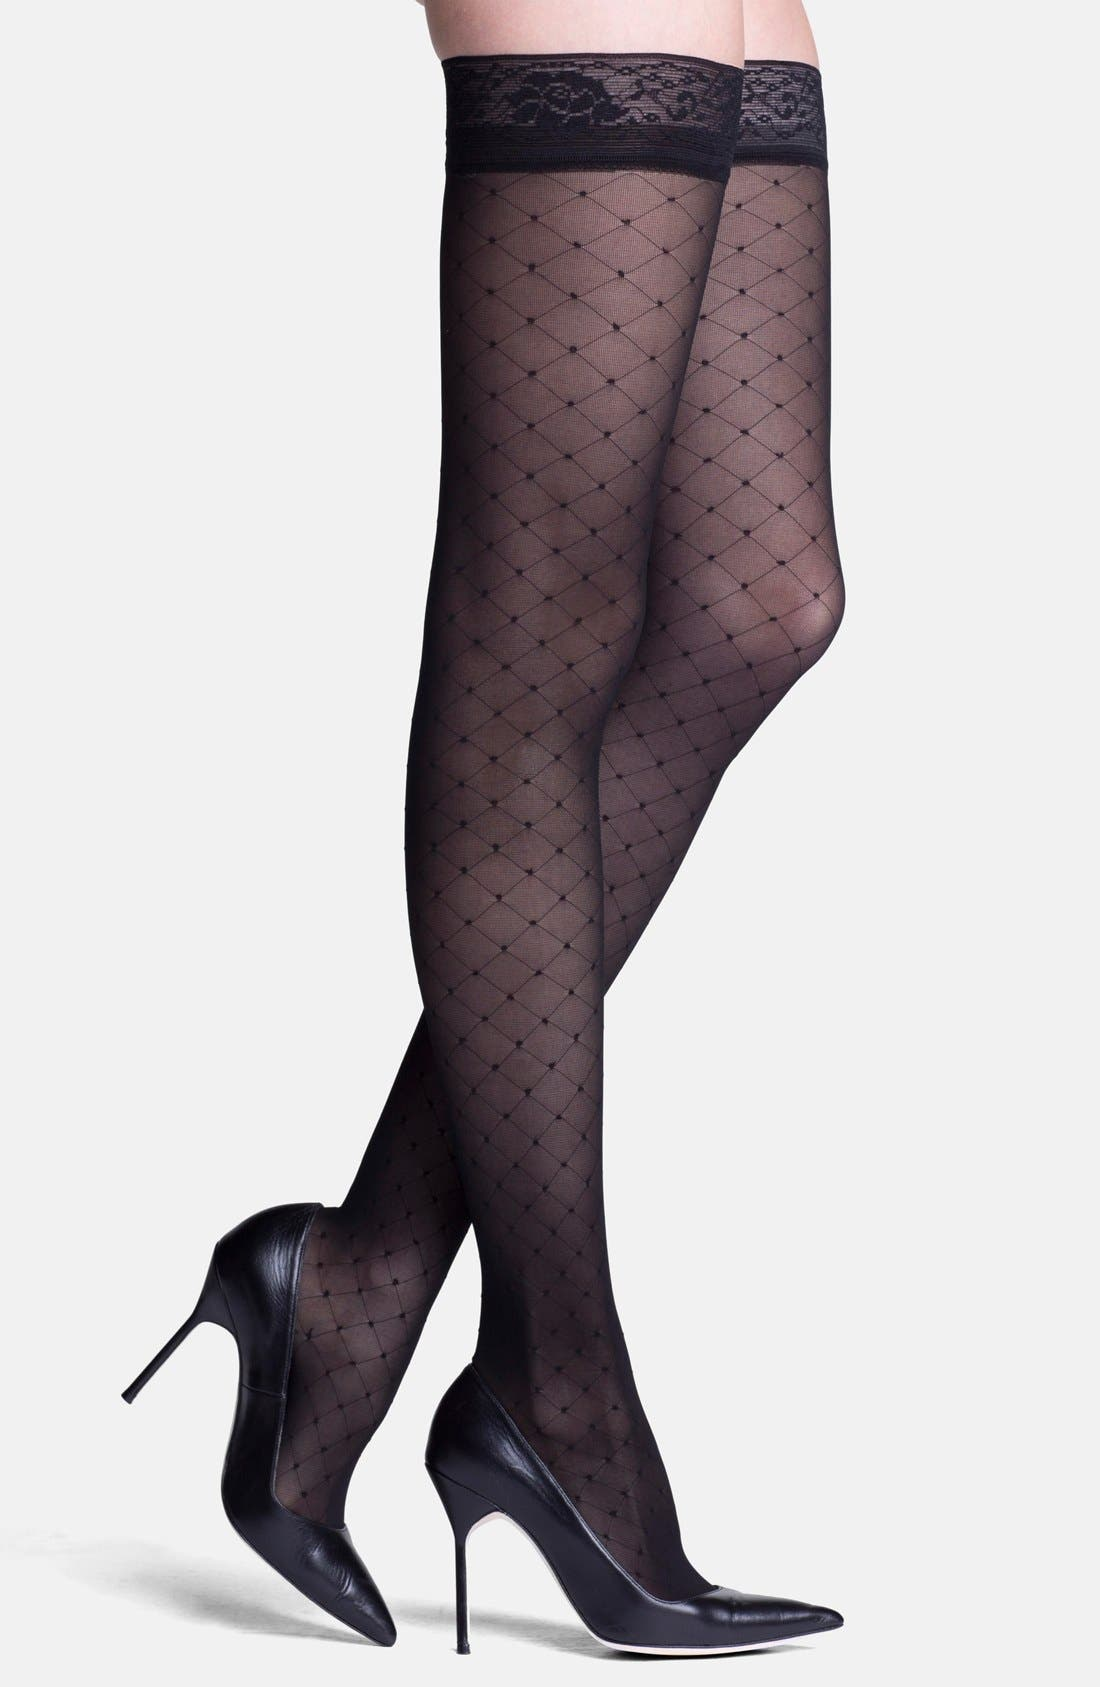 INSIGNIA by SIGVARIS 'Starlet' Diamond Pattern Compression Thigh Highs